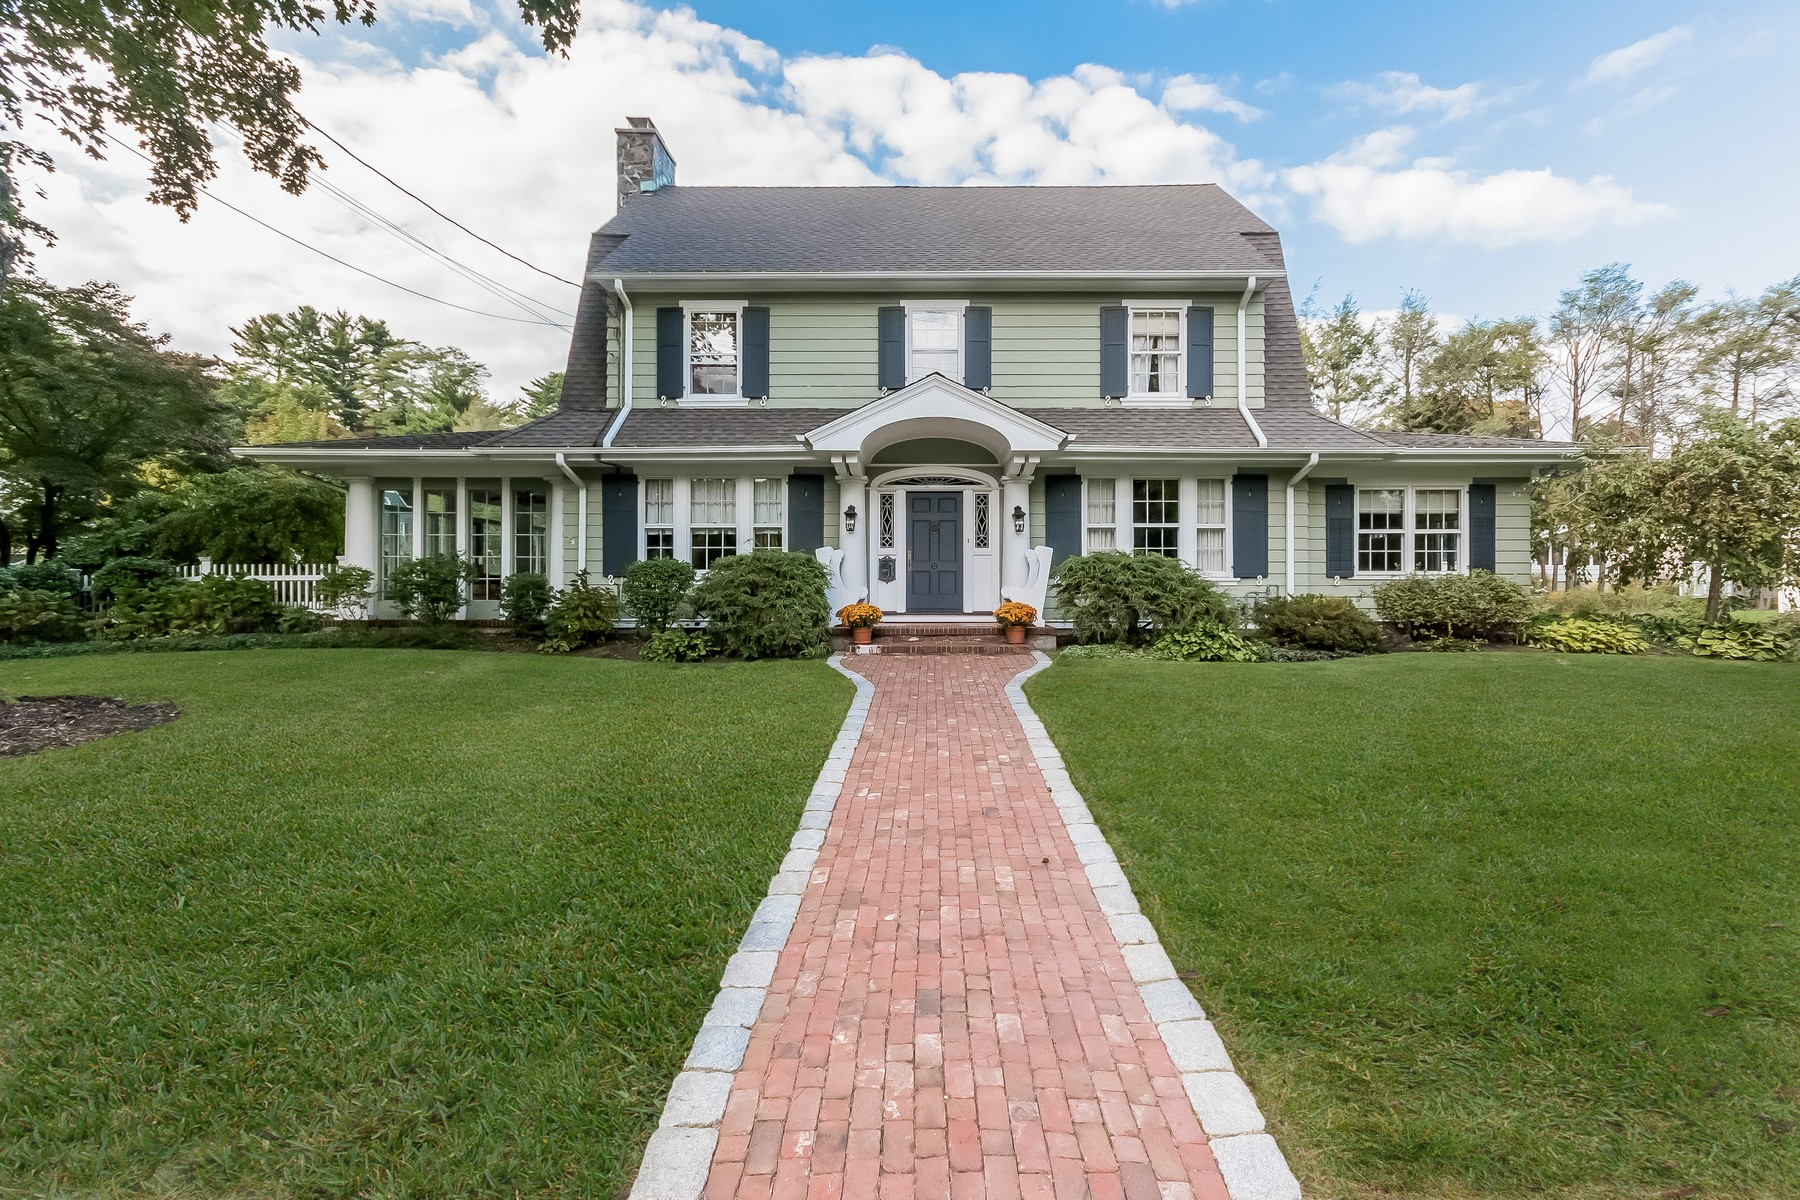 Property For Sale at Quintessential Dutch Colonial in Picturesque Country Club Neighborhood